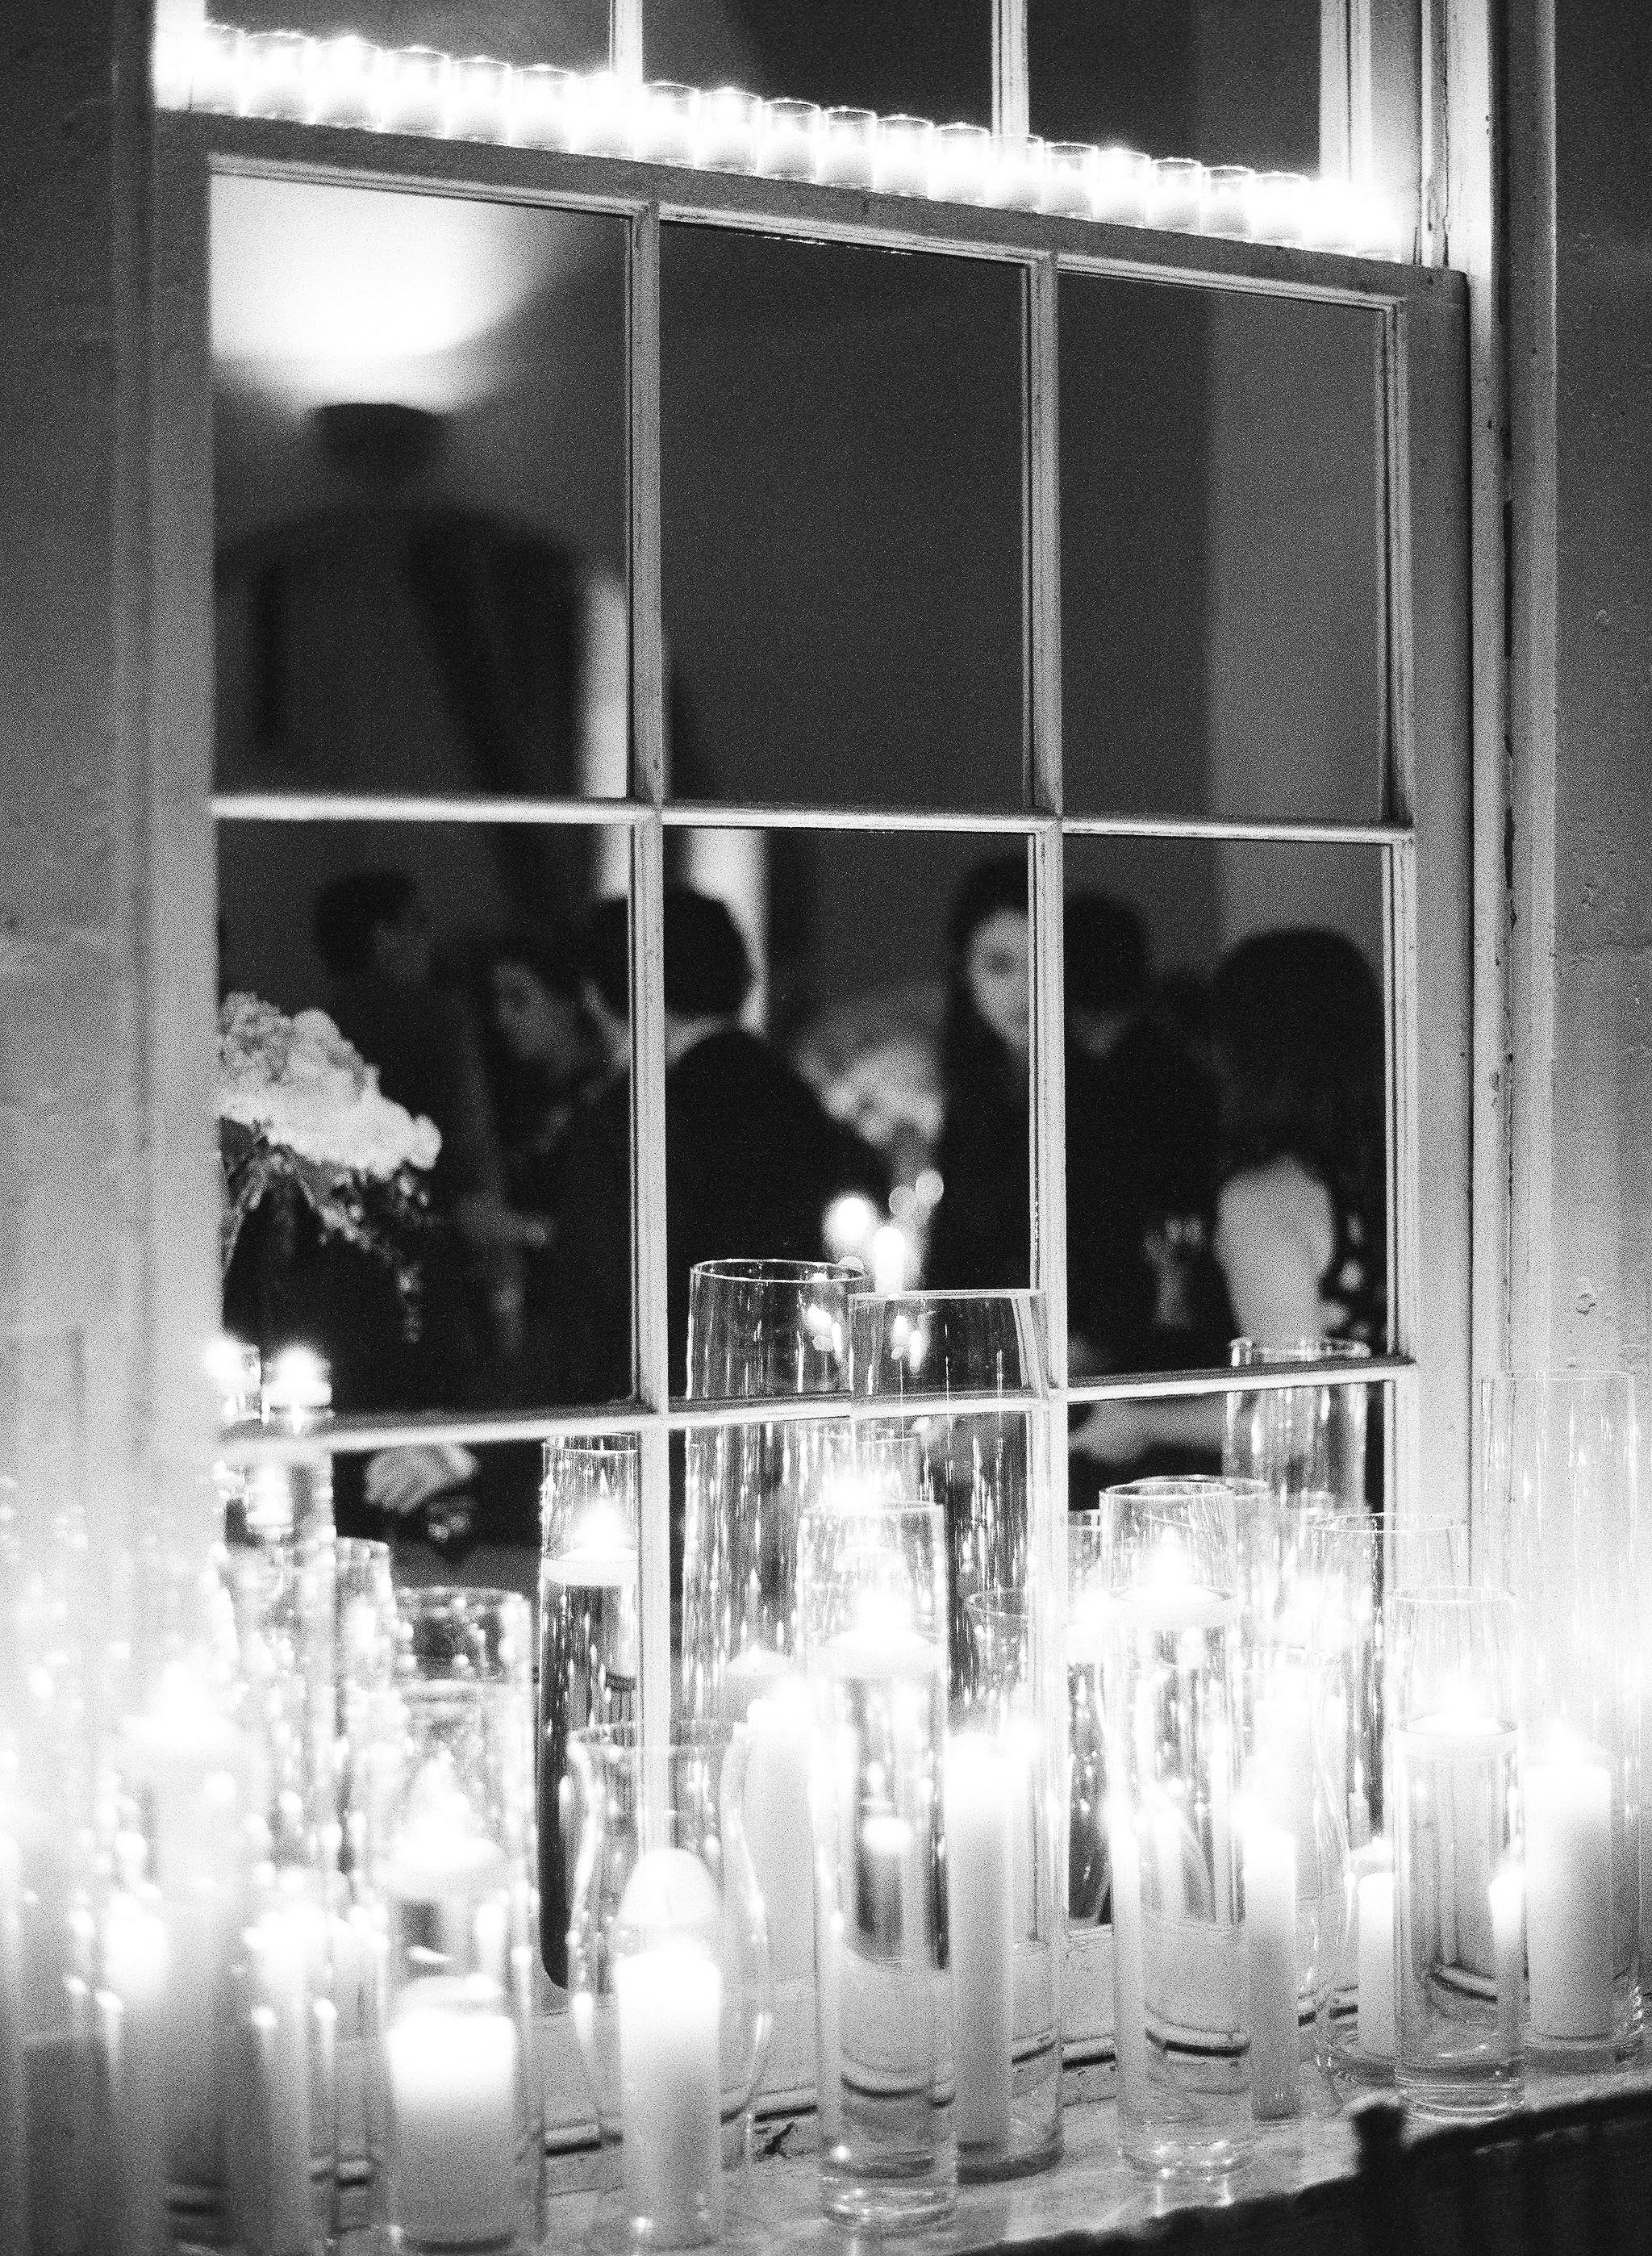 Wedding Planning Tips   Sapphire Events   Wedding Planner   Rylee Hitchner Photography   How to Use Pinterest   Candle Inspiration   Latrobe's Wedding   Candlelight Wedding